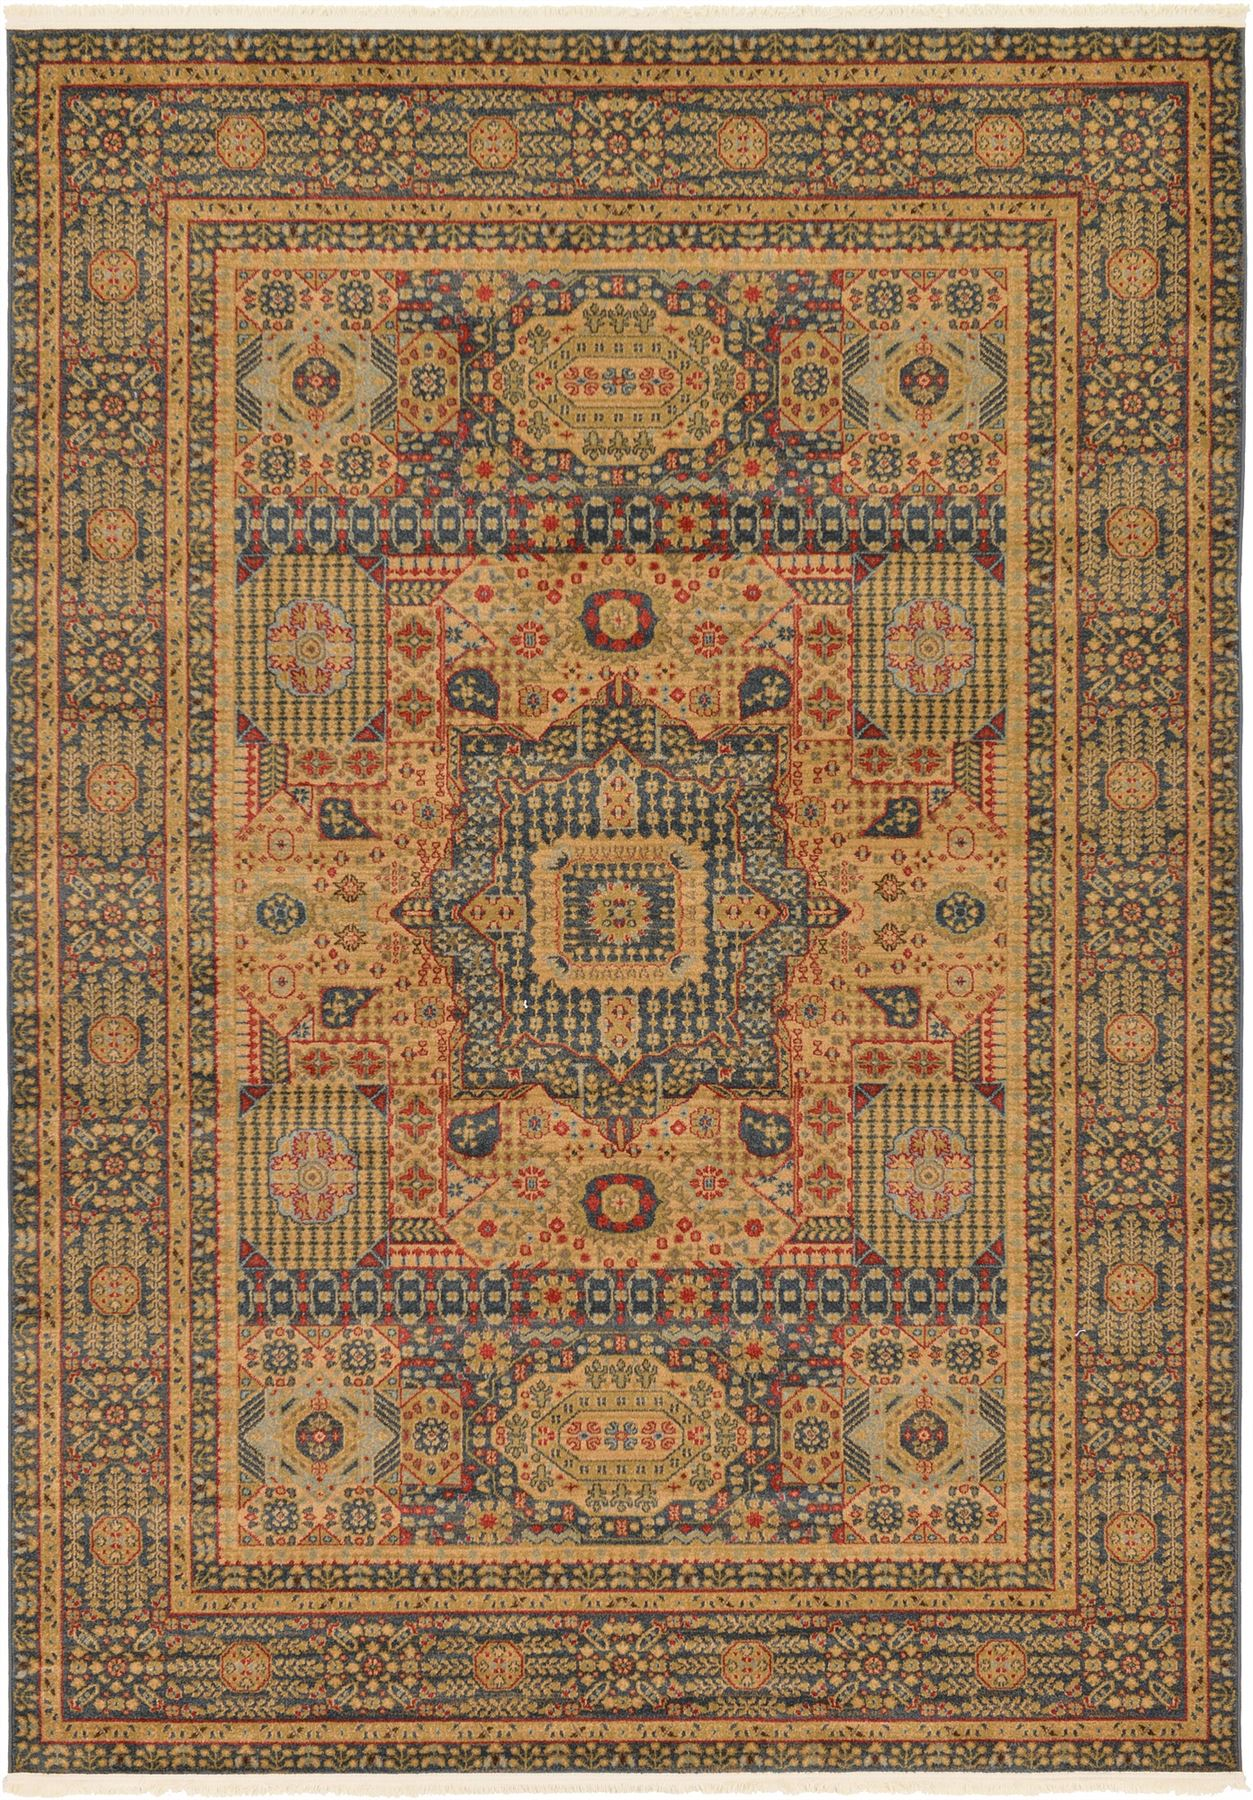 Medallion carpet traditional rugs floral area rug vintage for Vintage style area rugs